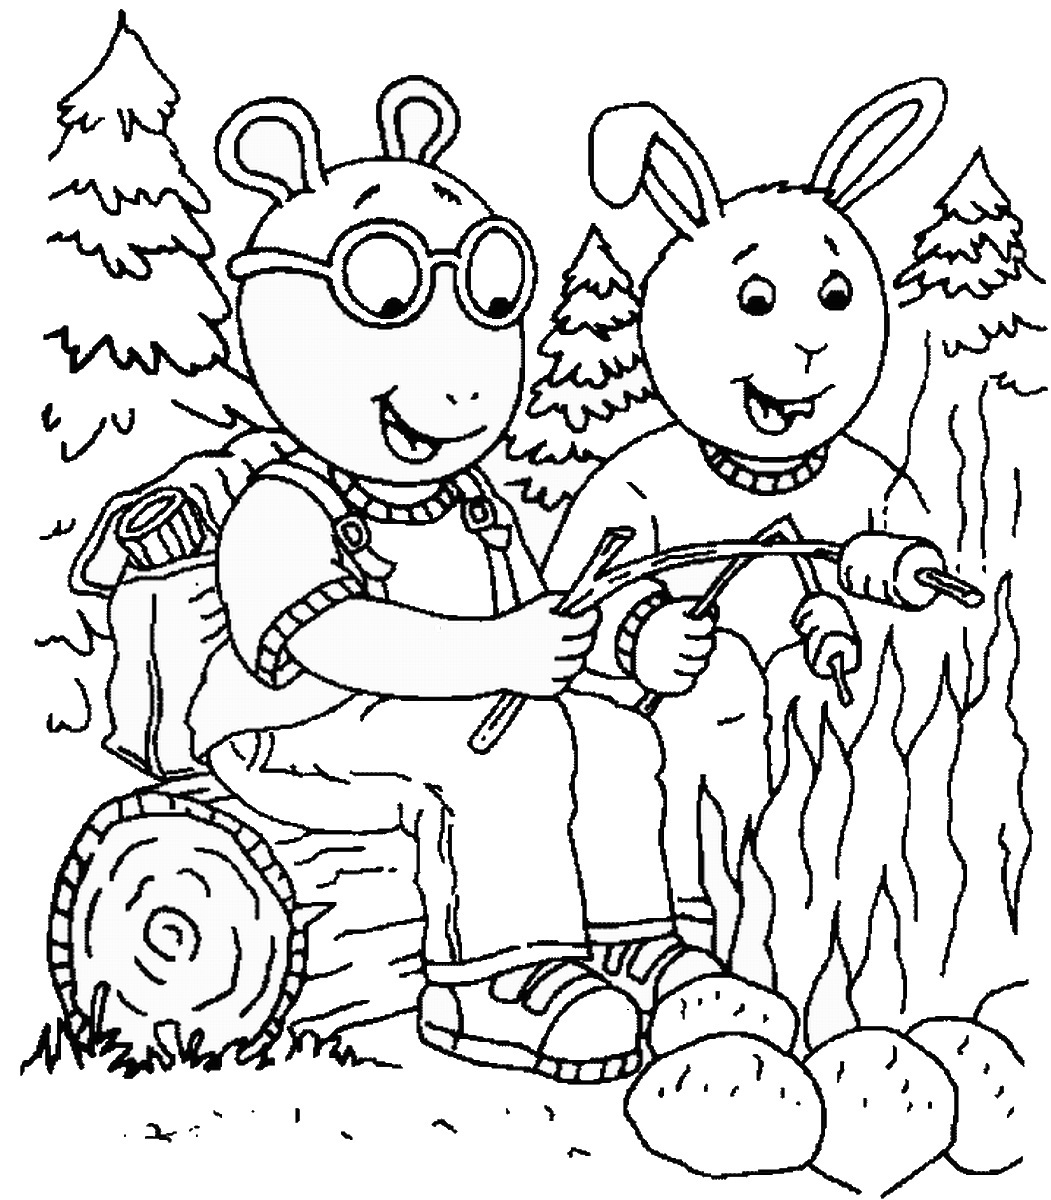 arthuir coloring pages | Arthur coloring pages to download and print for free